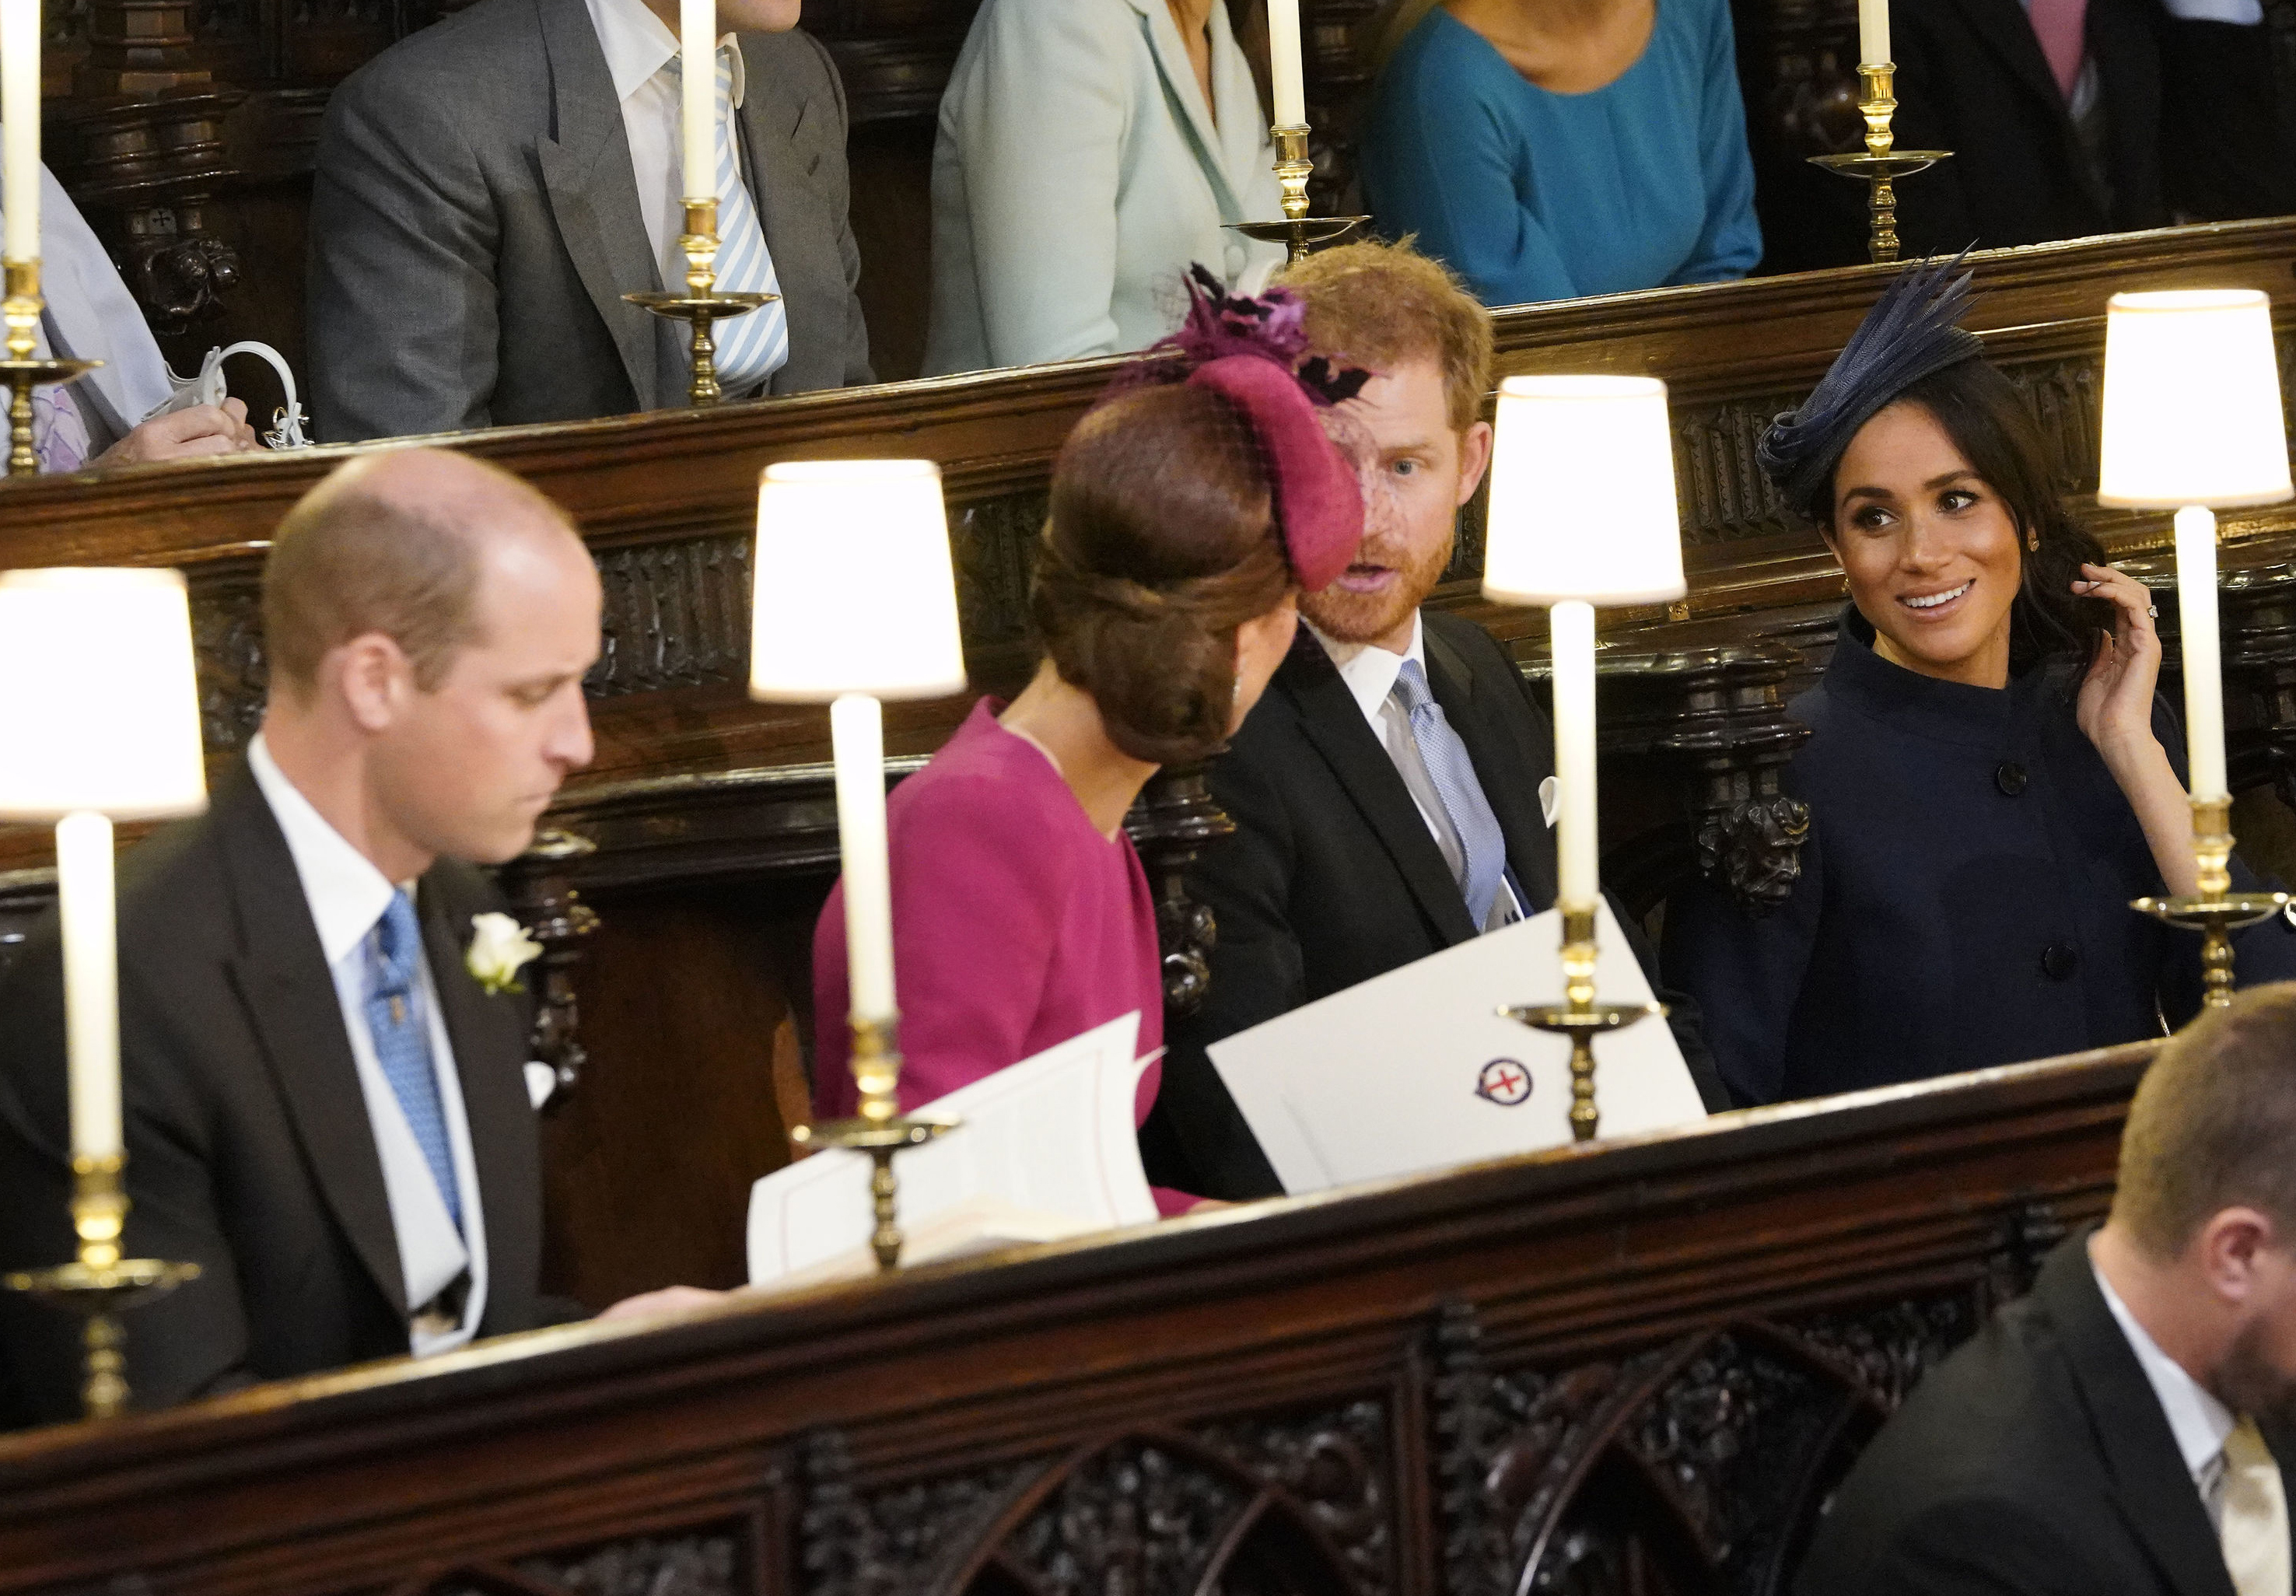 "<div class=""meta image-caption""><div class=""origin-logo origin-image none""><span>none</span></div><span class=""caption-text"">Prince William, Kate Duchess of Cambridge, Prince Harry and Meghan Duchess of Sussex take their seats ahead of the wedding of Princess Eugenie of York and Jack Brooksbank. (Danny Lawson/Pool via AP)</span></div>"